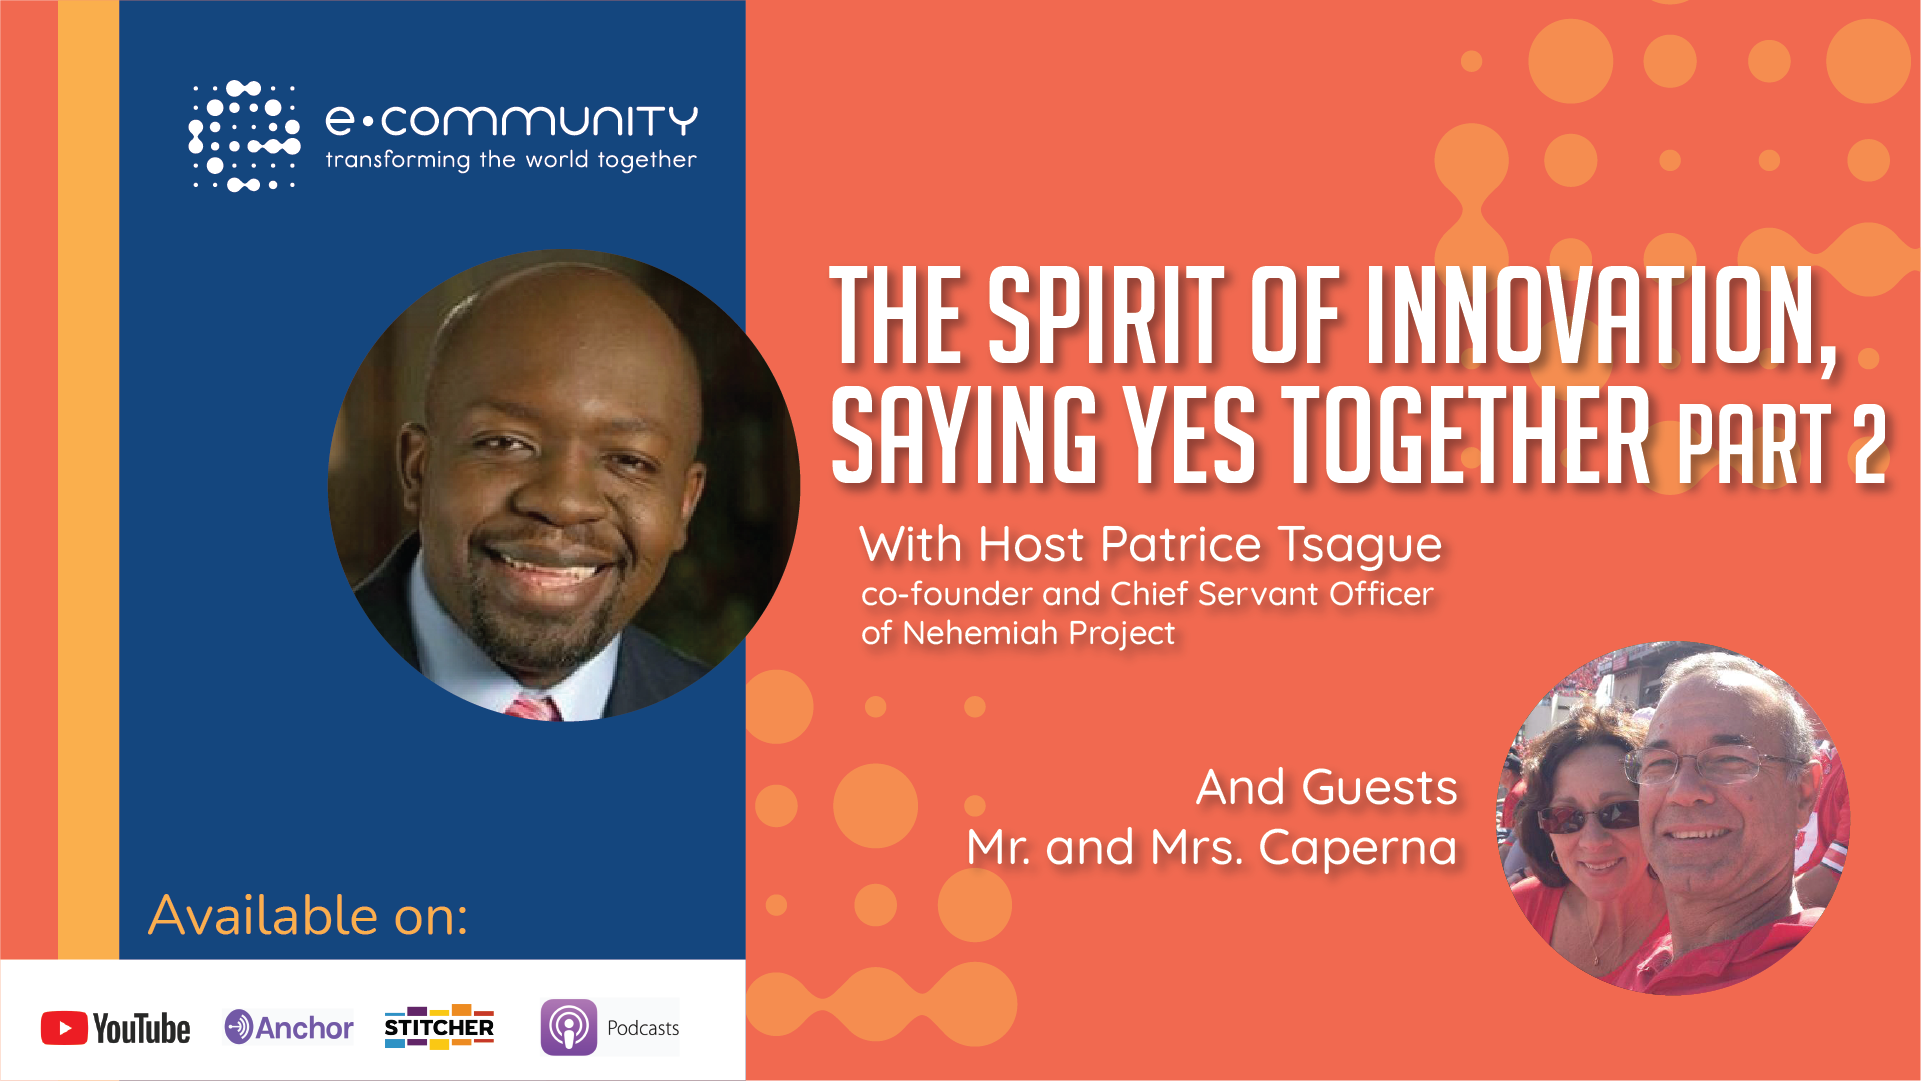 The Spirit of Innovation - Saying Yes Together Part 2